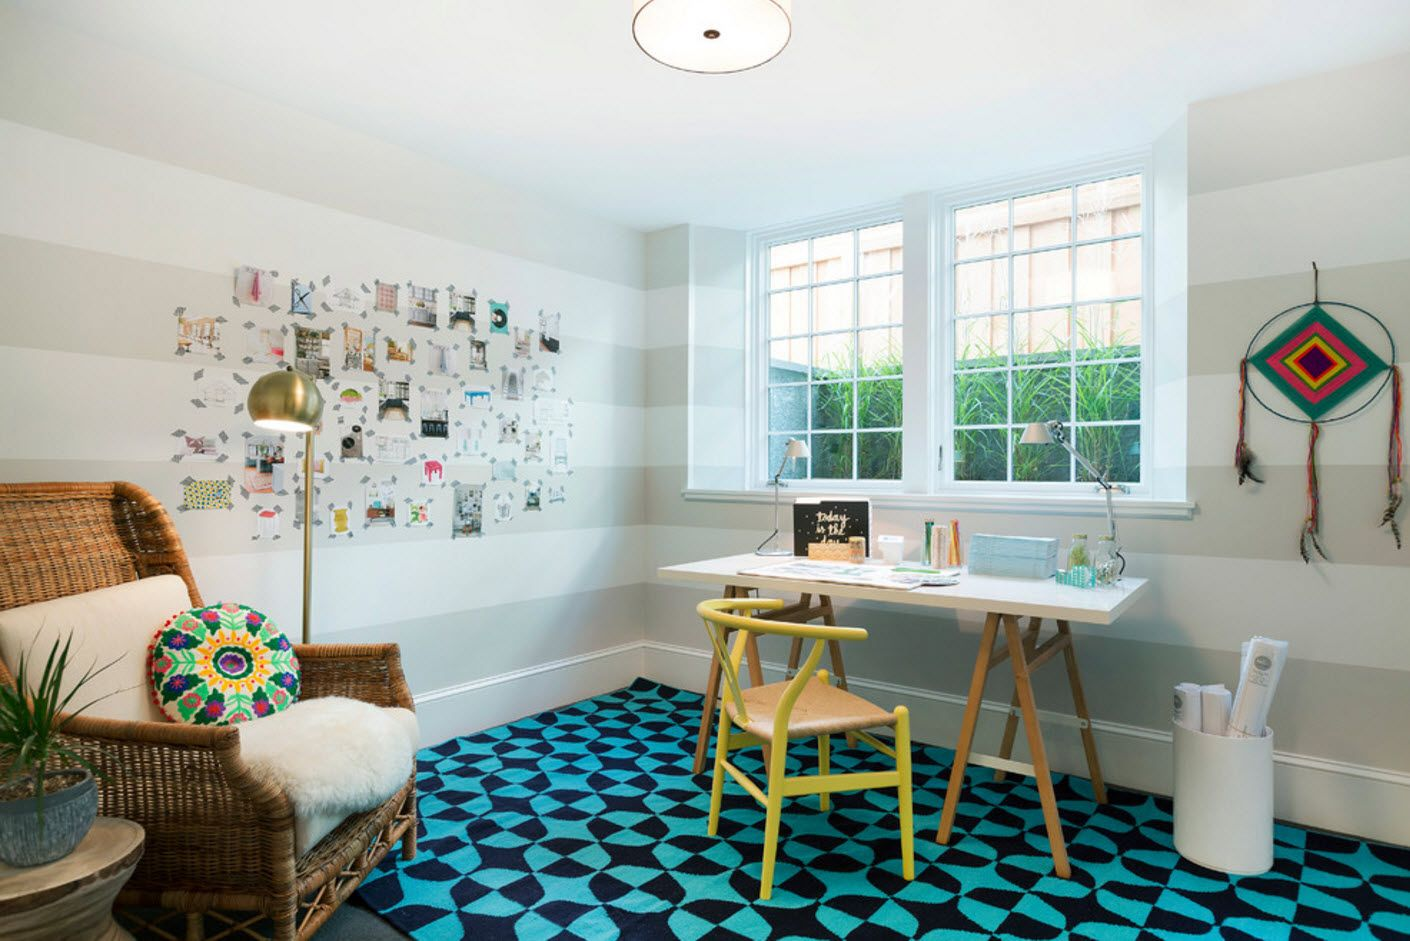 Top 100 Modern Home Office Design Trends 2017. White interior with blue floor design and chess pattern